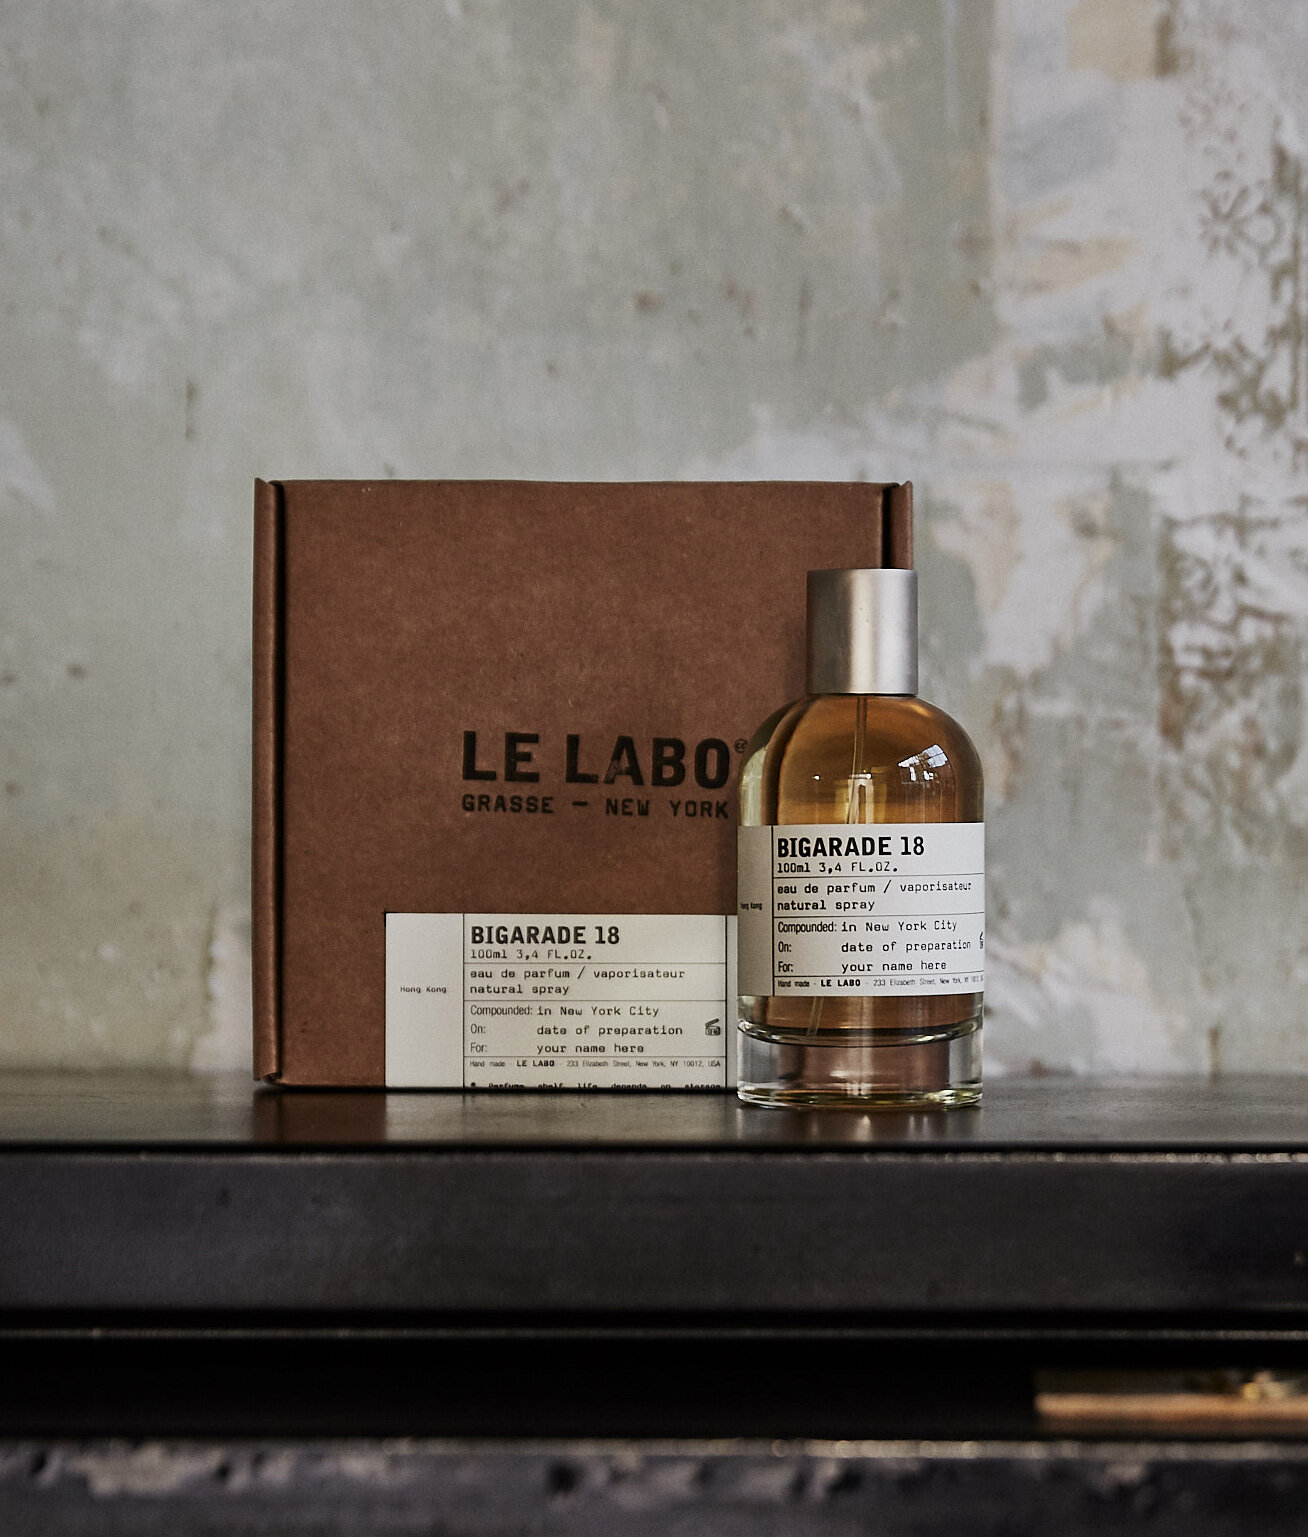 """BIGARADE 18,Hong Kong  City Exclusive   Le Labo _ """"Bigarade 18 is a schizophrenic perfume. It's very classical yet says something about you that really isn't. It's bright and very powerful, but you can't seem to breath enough of it in…And it's simple. You take the best bergamote and neroli petals there are and mix it with the best musks and synthetic ambergris out there, add a drop or two of woods et voila! The resulting tension is like a tug of war between the classical smell of citruses and the warm and transgressive hum of dark notes and woods where there is never a clear winner. Bigarade 18 is rigid yet comfortable, classic yet contemporary, bright yet long-lasting. We dedicate this perfume to Hong Kong, the fragrant bay of old and new, rich with memories for us of classic smells of white florals and citruses mixed with all the discovery and grandeur."""""""